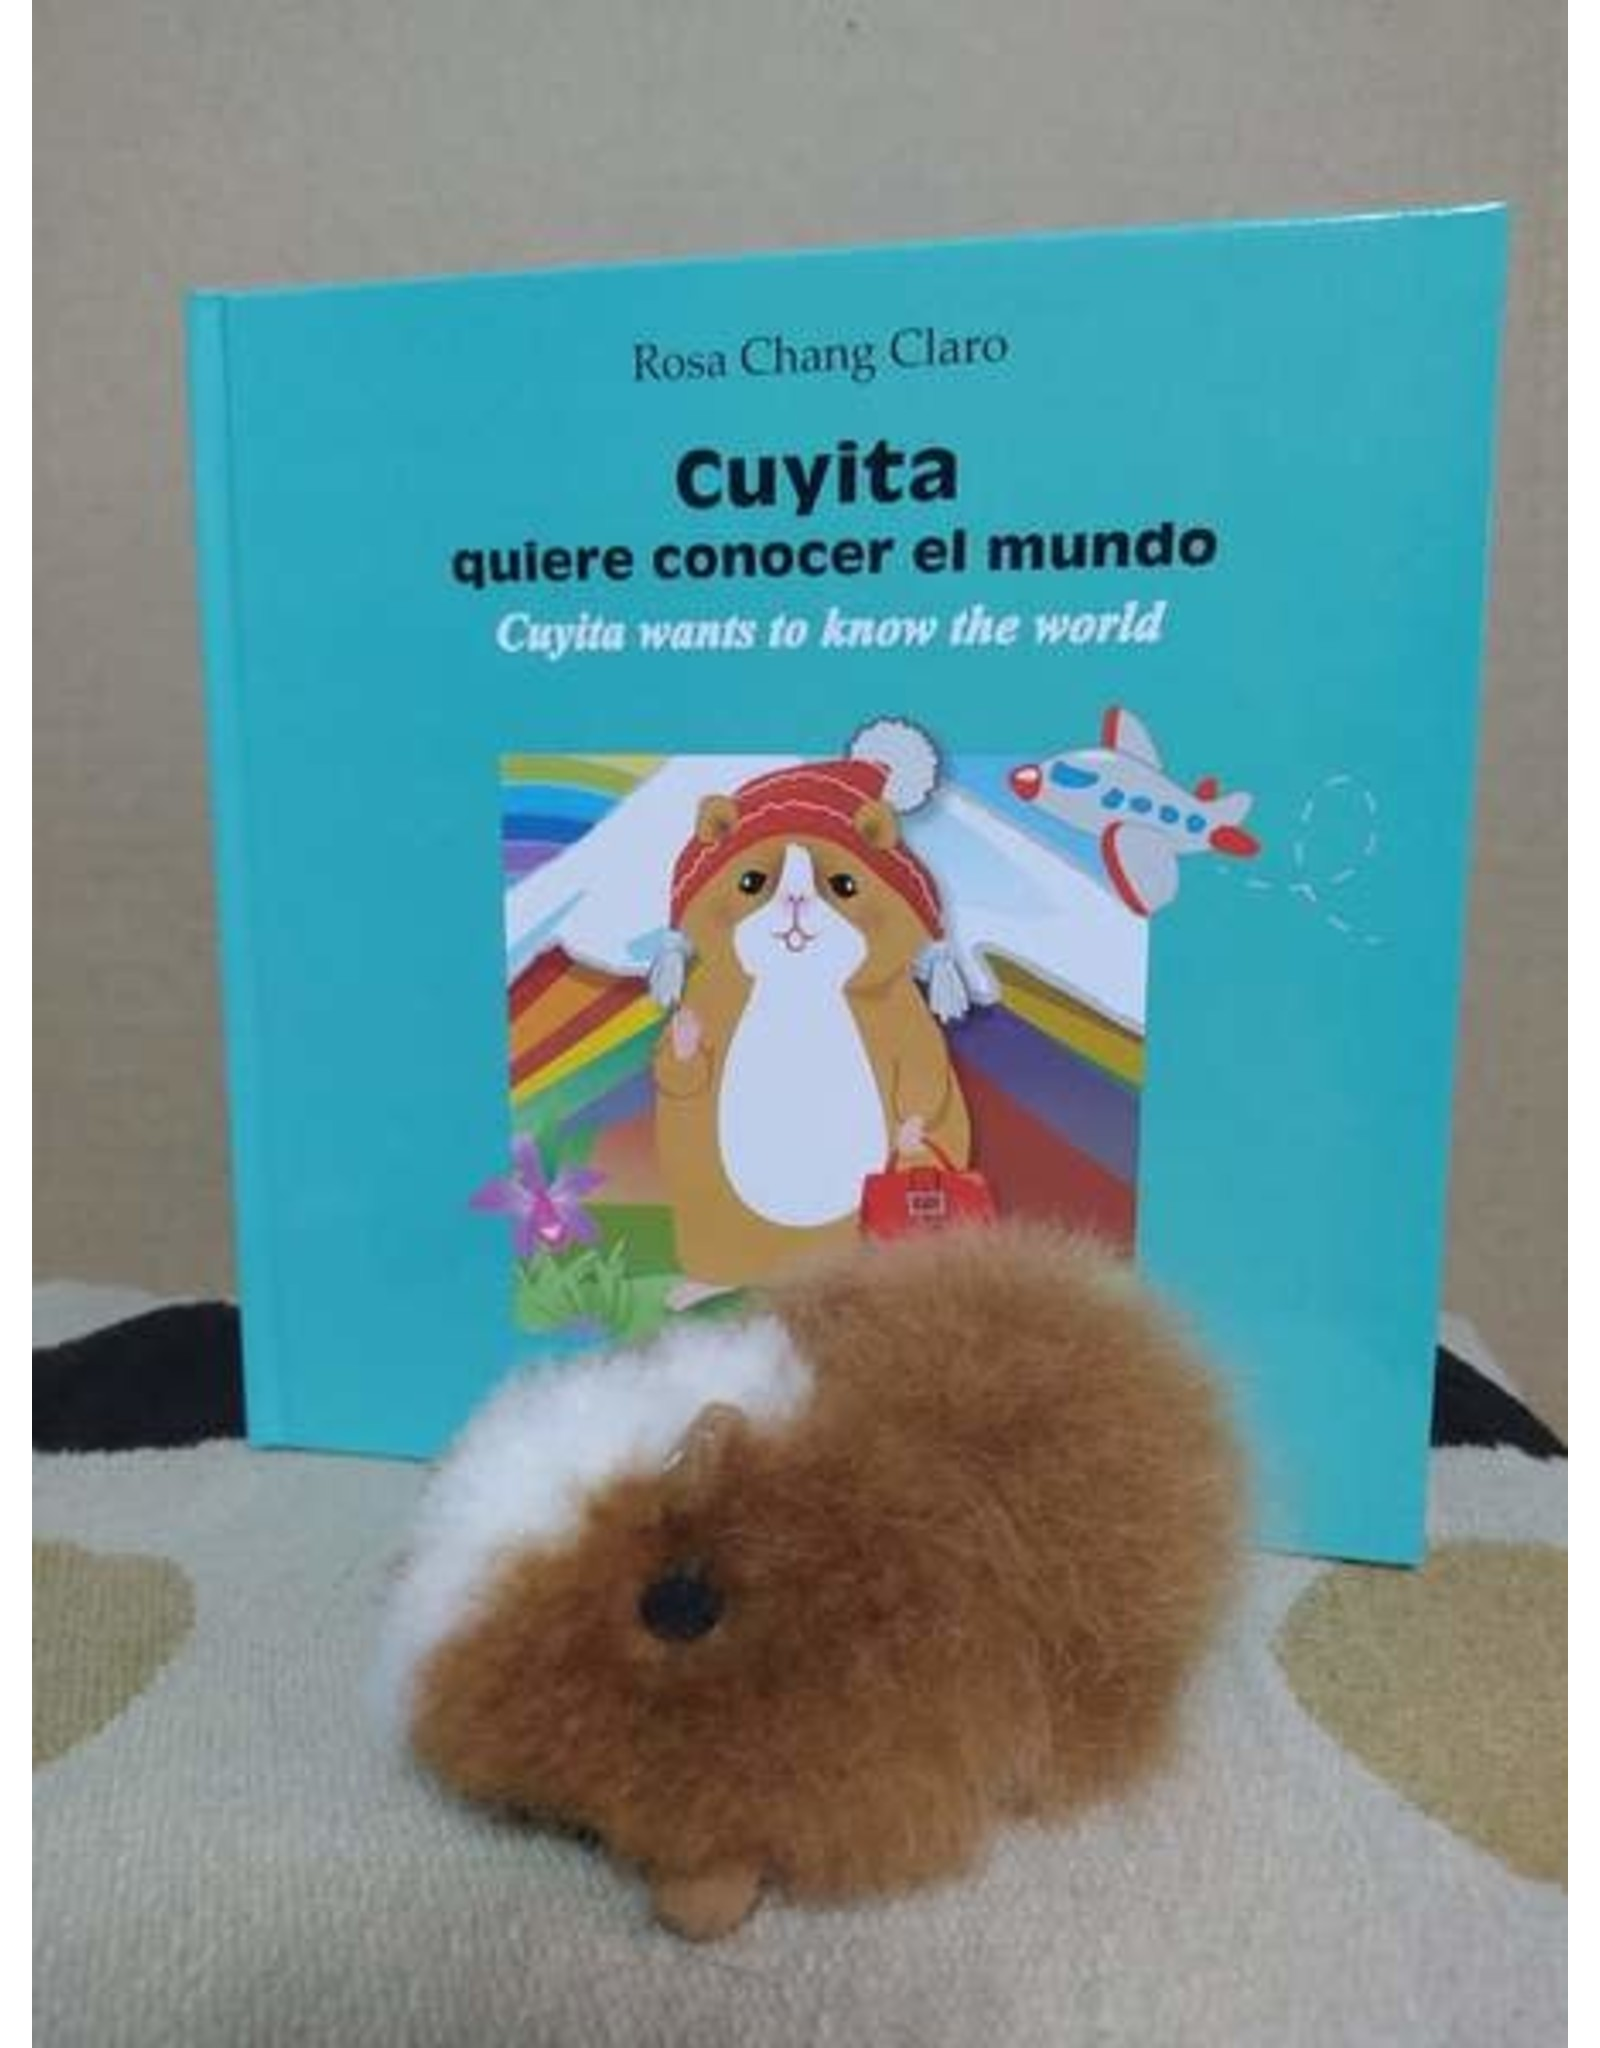 Cuyita Wants to know the World w/ Guinea Pig Toy